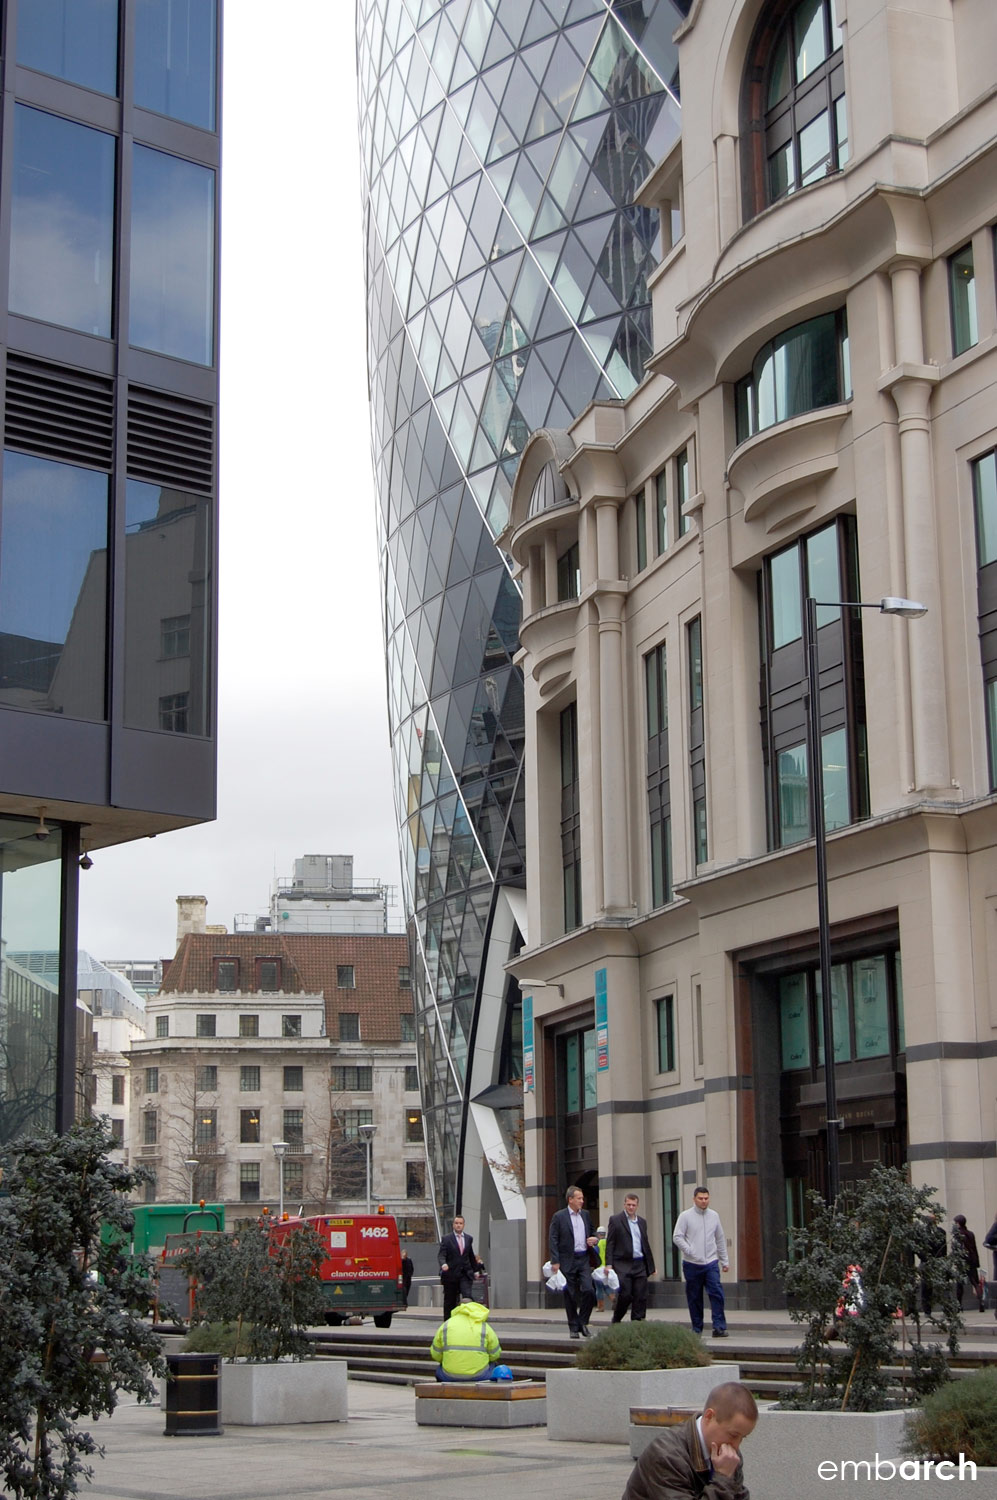 30 St. Mary's Axe - exterior view from stree